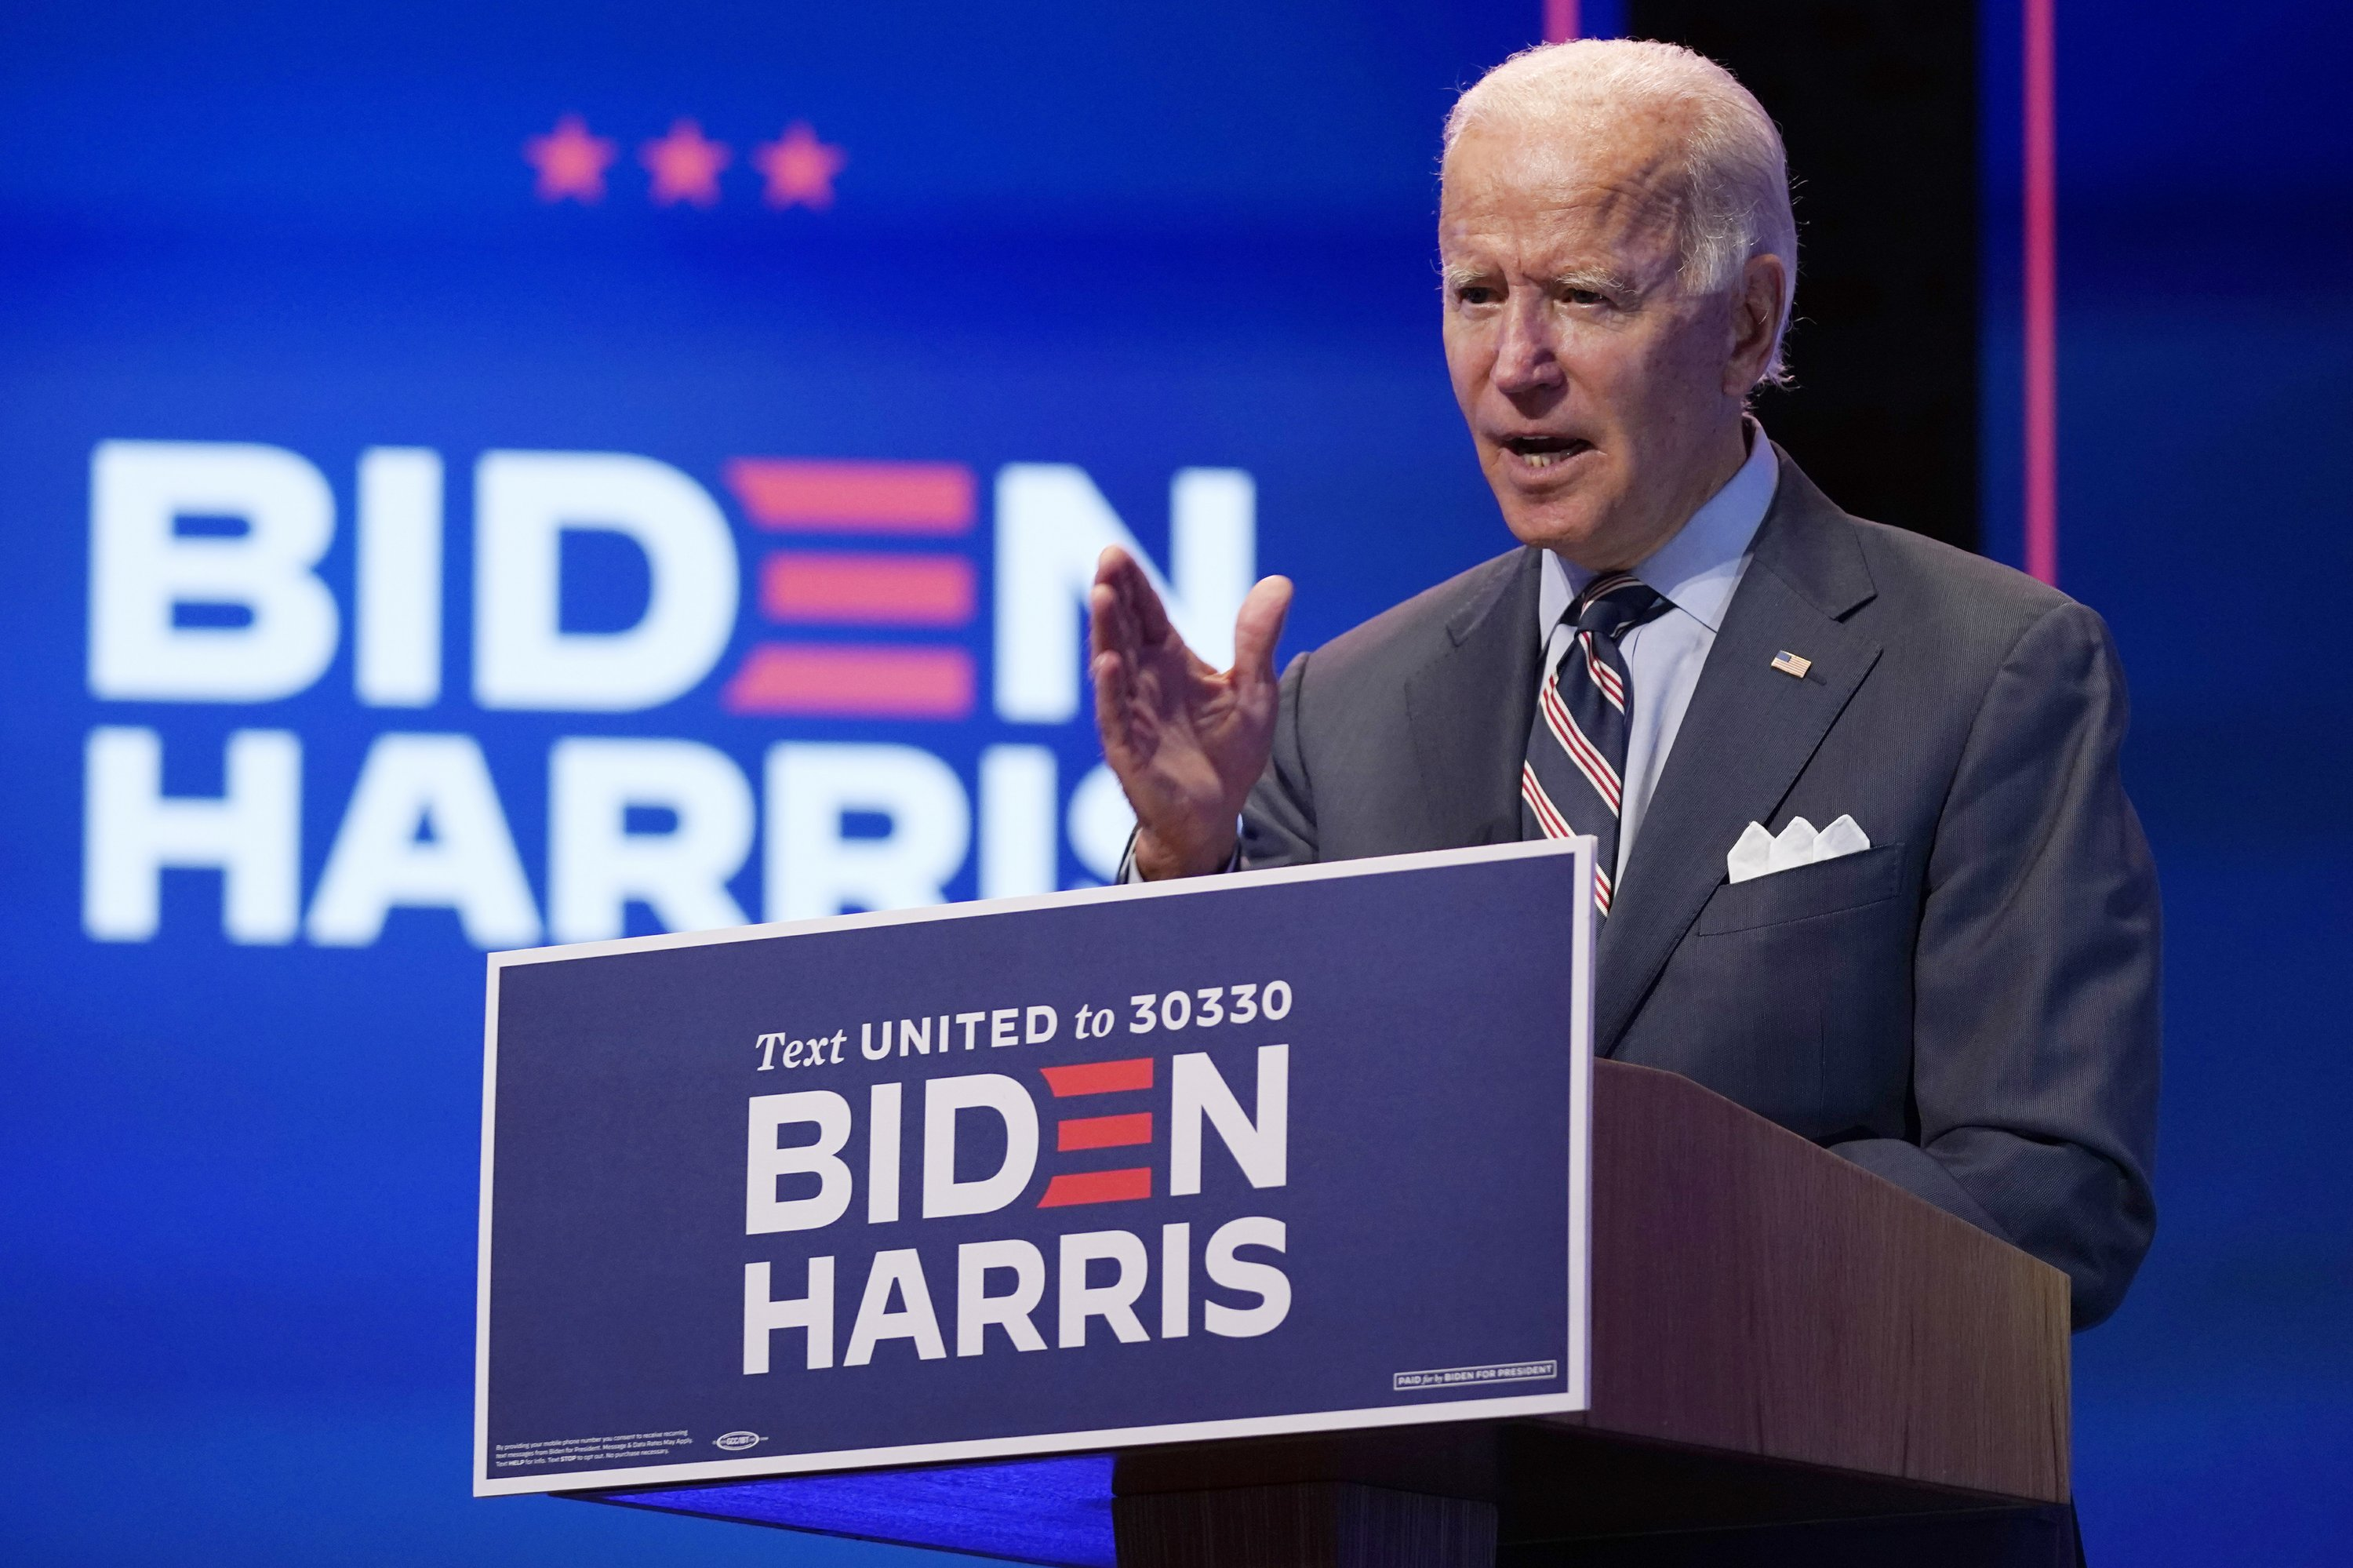 Biden under pressure to unveil list of potential court picks